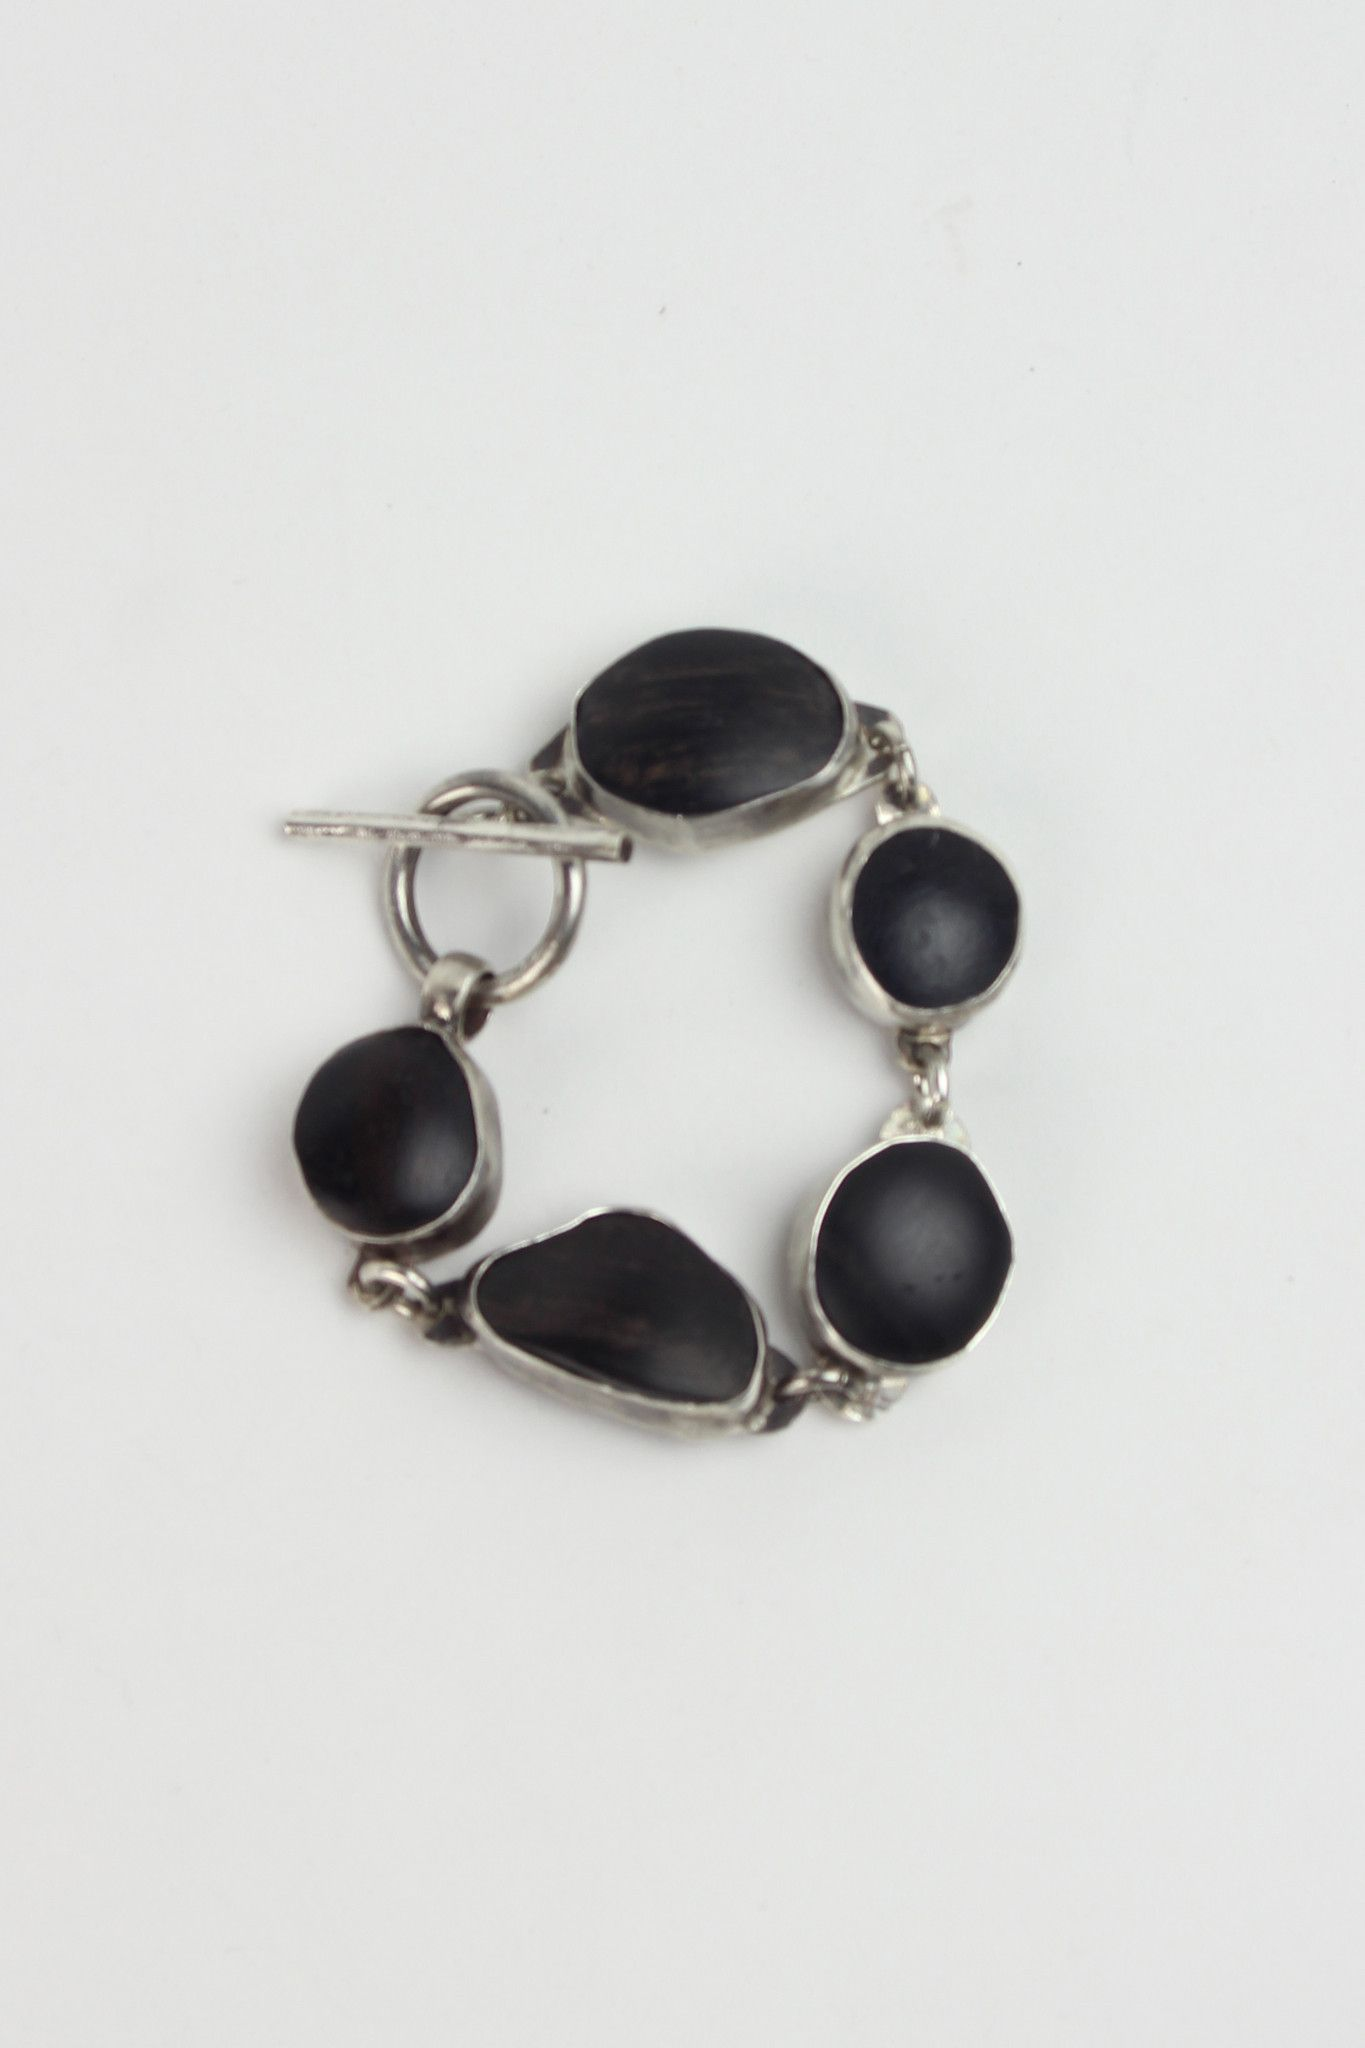 EBONY STONE BRACELET - COMING FALL 2015